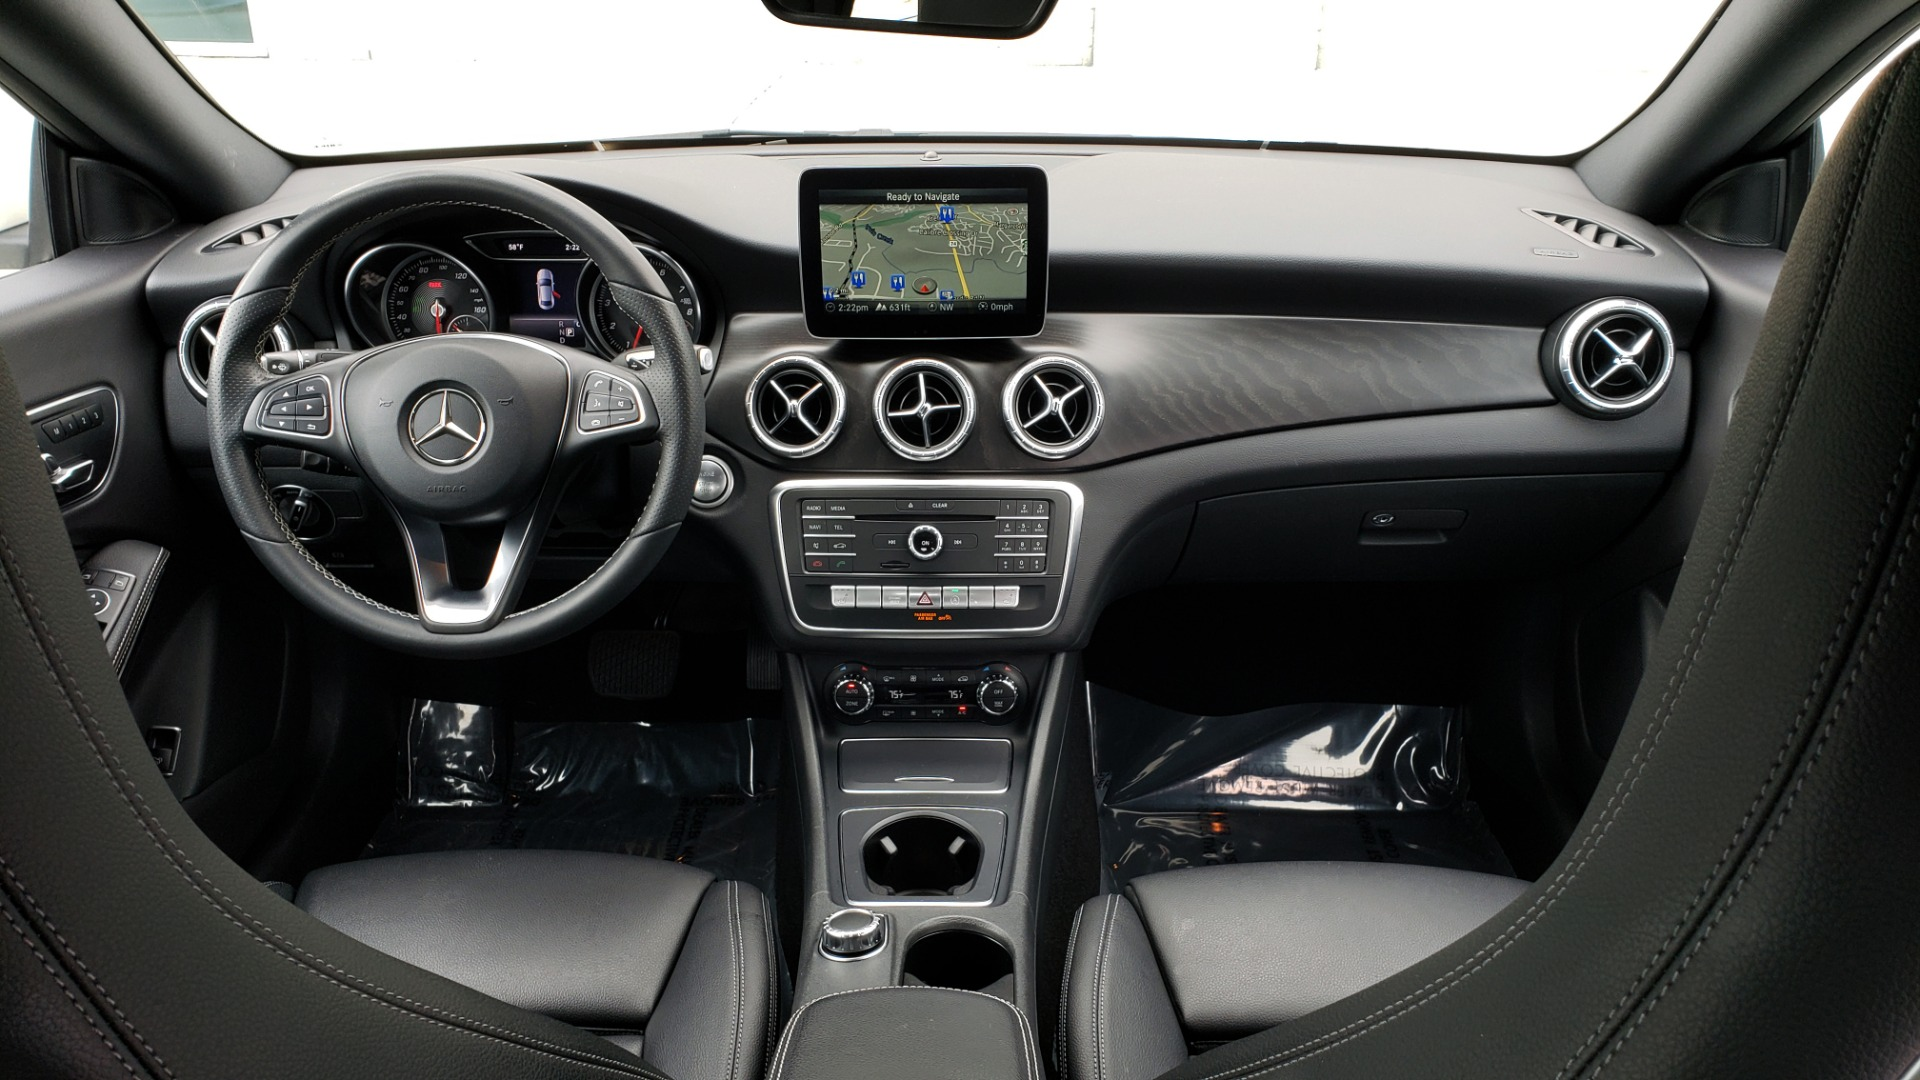 Used 2018 Mercedes-Benz CLA 250 PREMIUM / NAV / PANO-ROOF / APPLE CARPLAY / REARVIEW for sale $23,995 at Formula Imports in Charlotte NC 28227 78